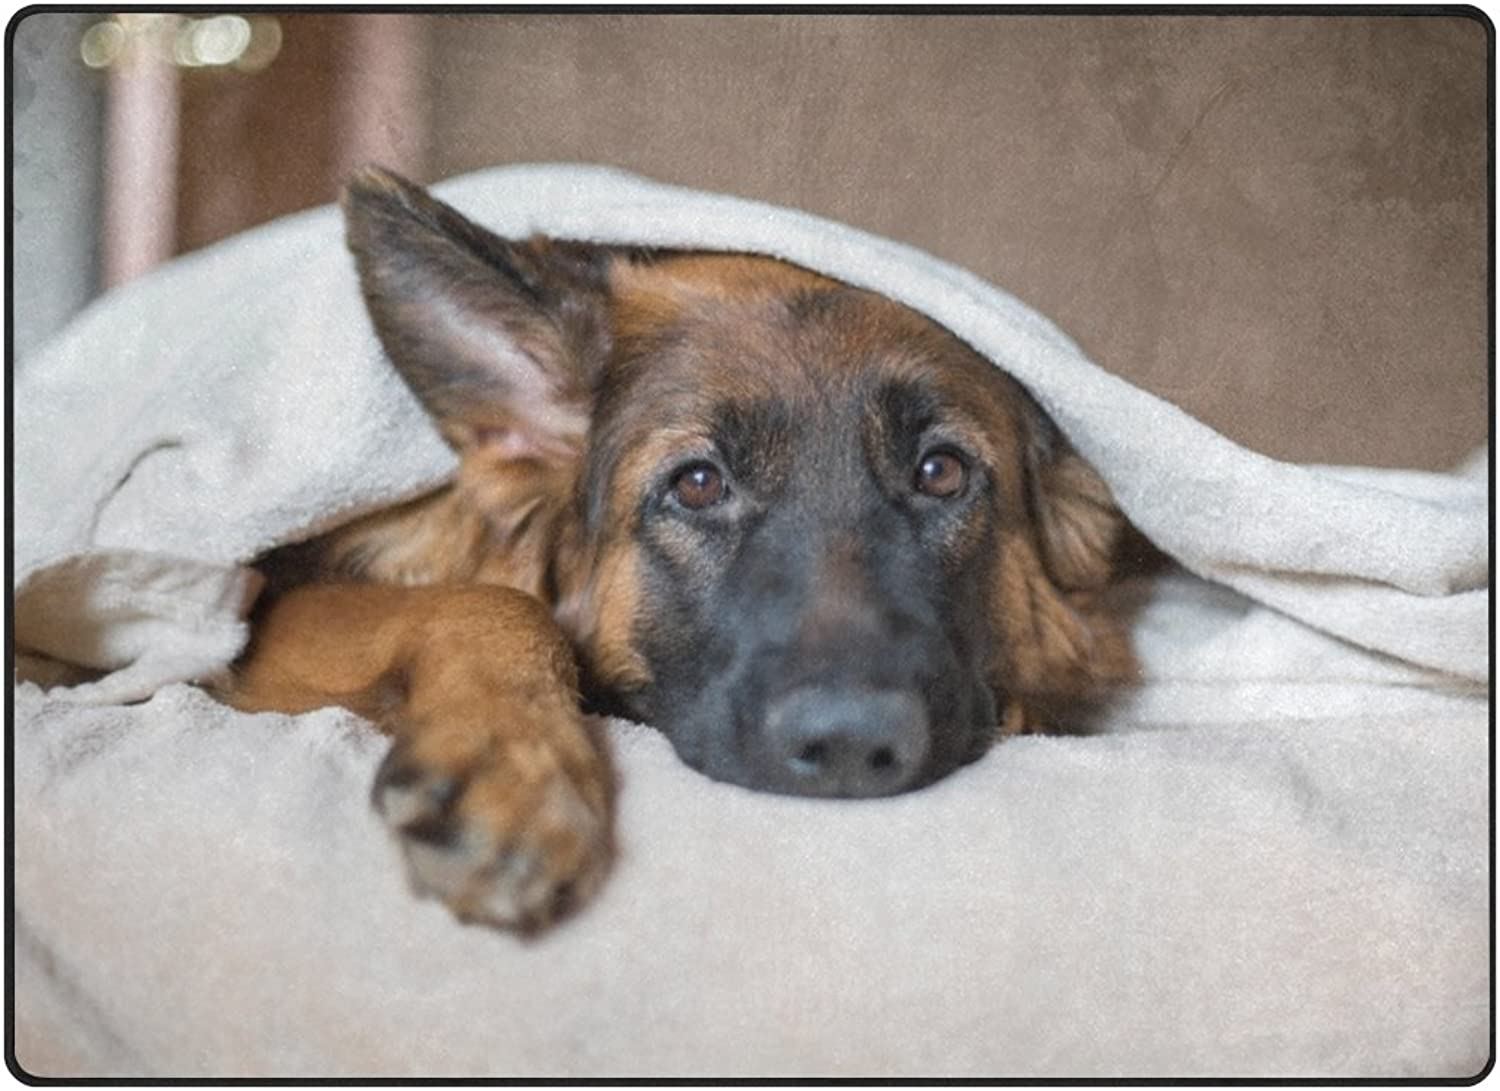 SUABO 80 x 58 inches Area Rug Non-Slip Floor Mat Cute-German-Shepherd-in-A-Blanket-On-Bed-Picture-I Printed Doormats for Living Room Bedroom